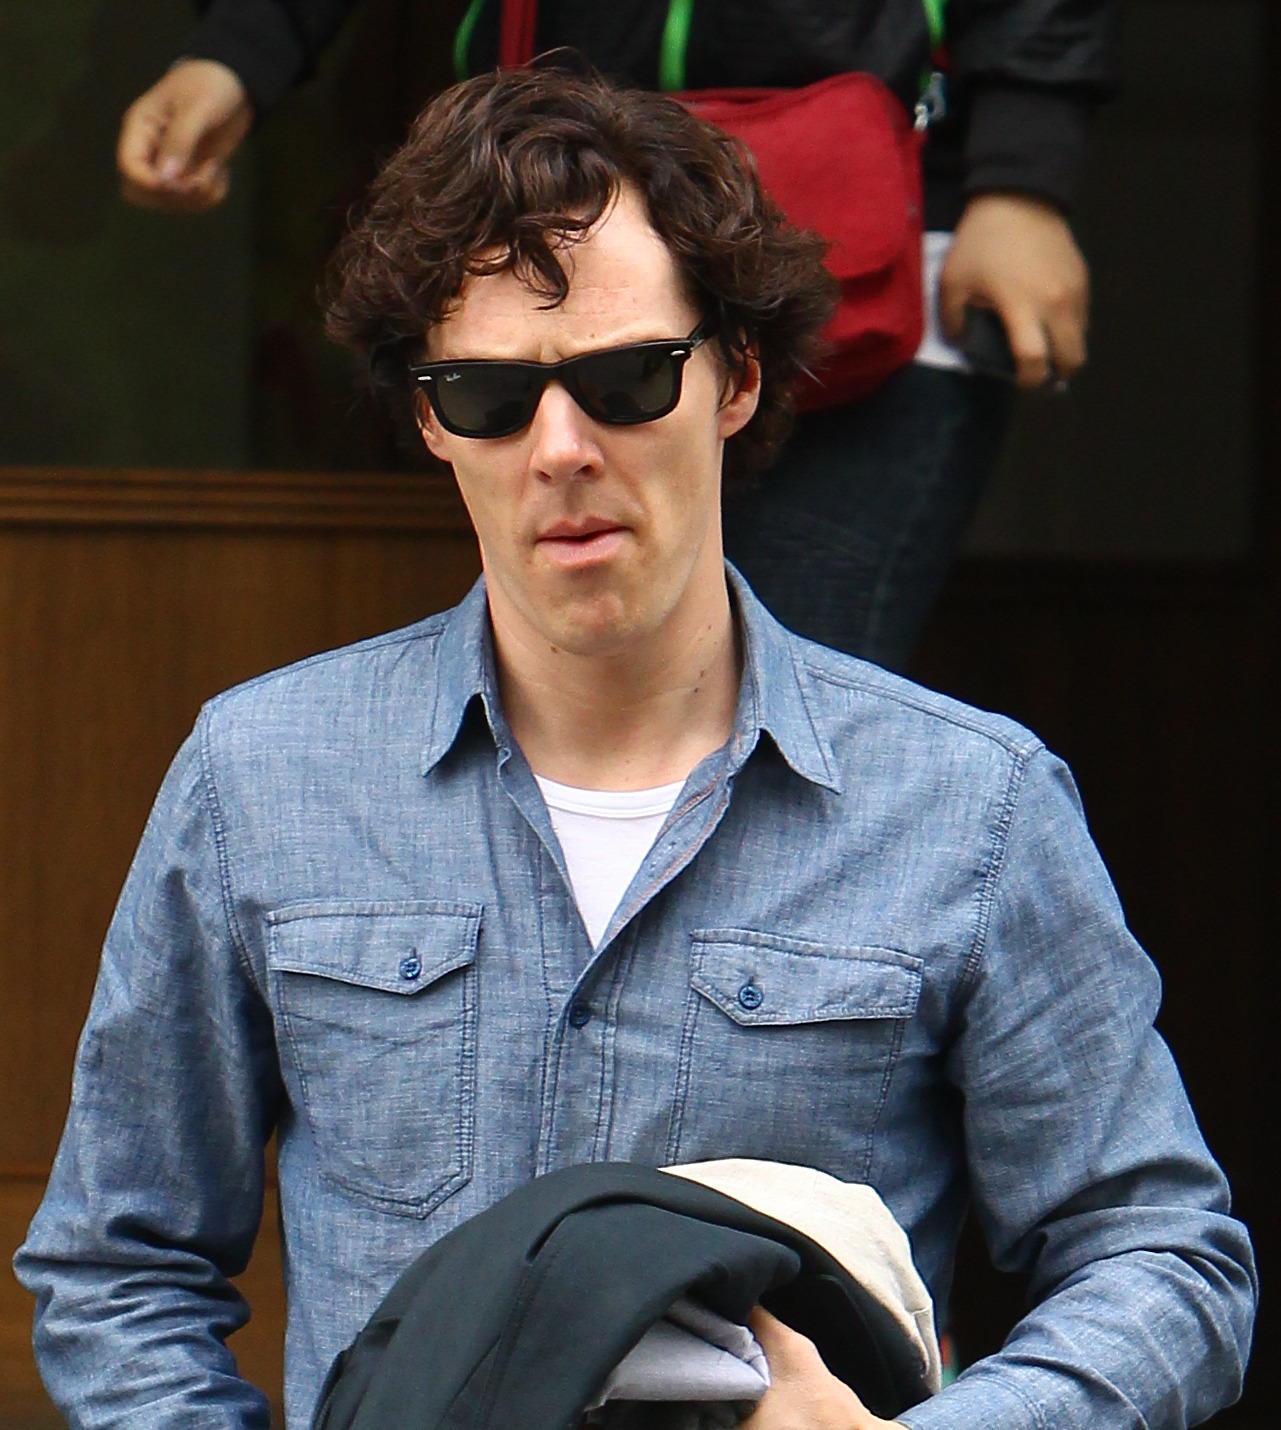 20 Things You Probably Never Knew About Benedict Cumberbatch